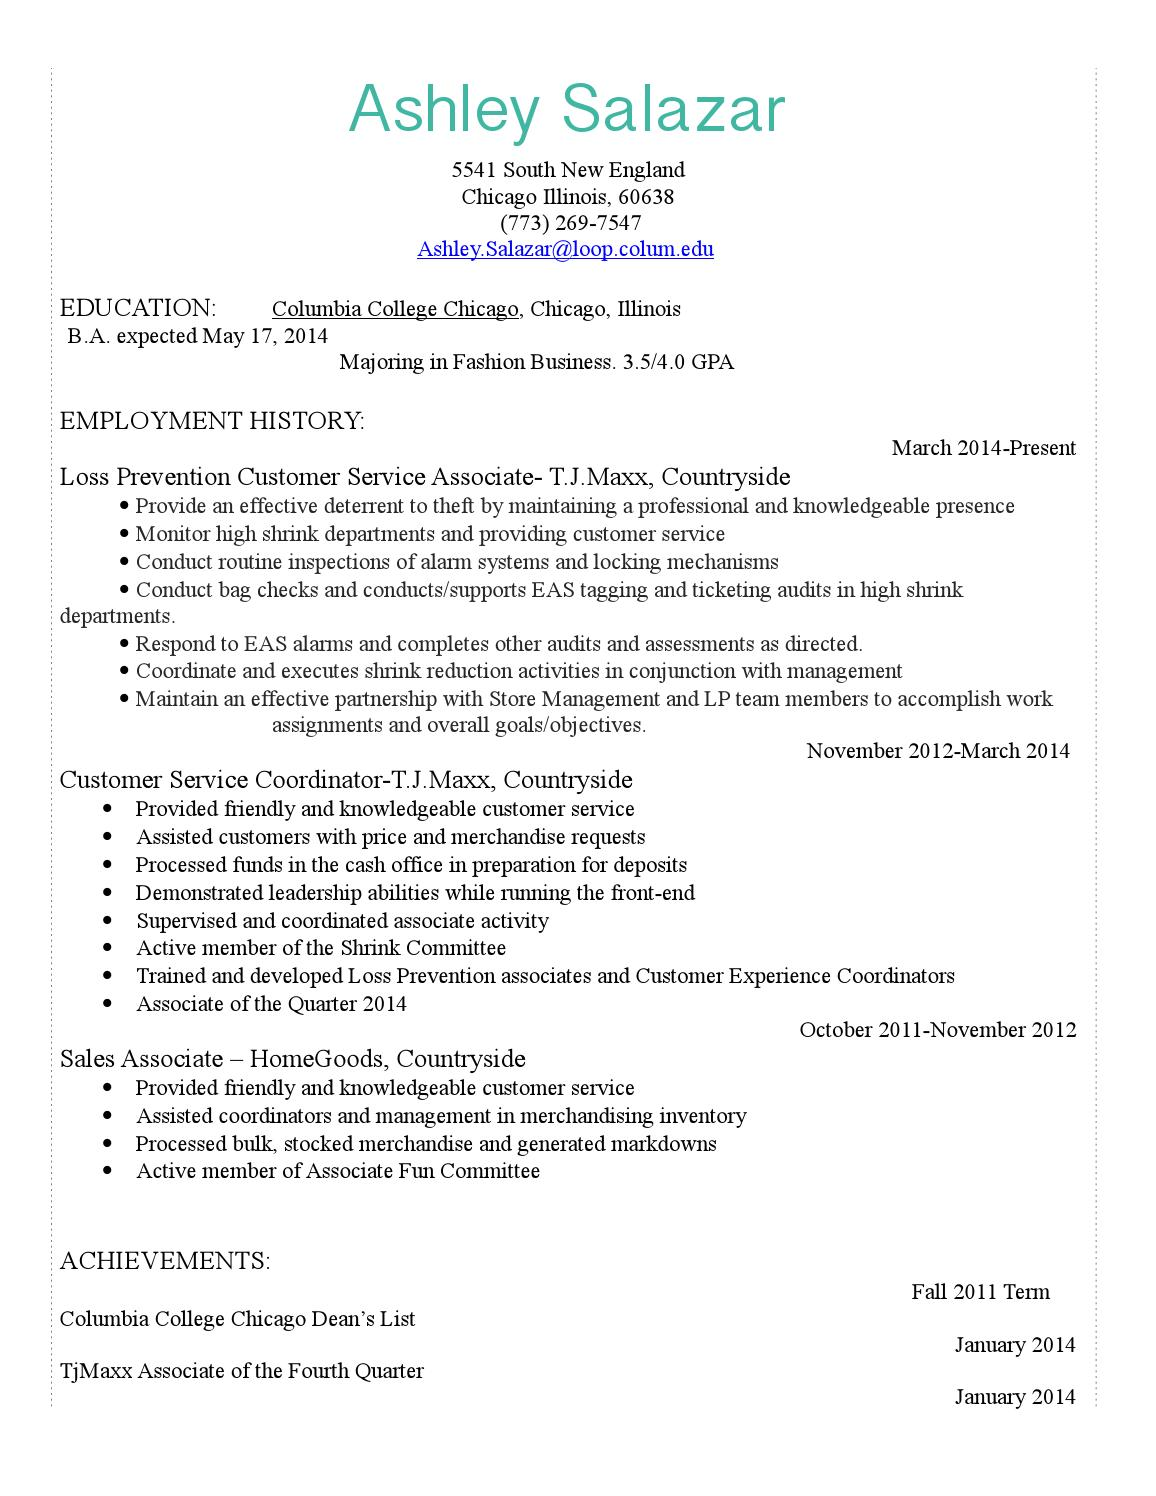 sample columbia college chicago resume help